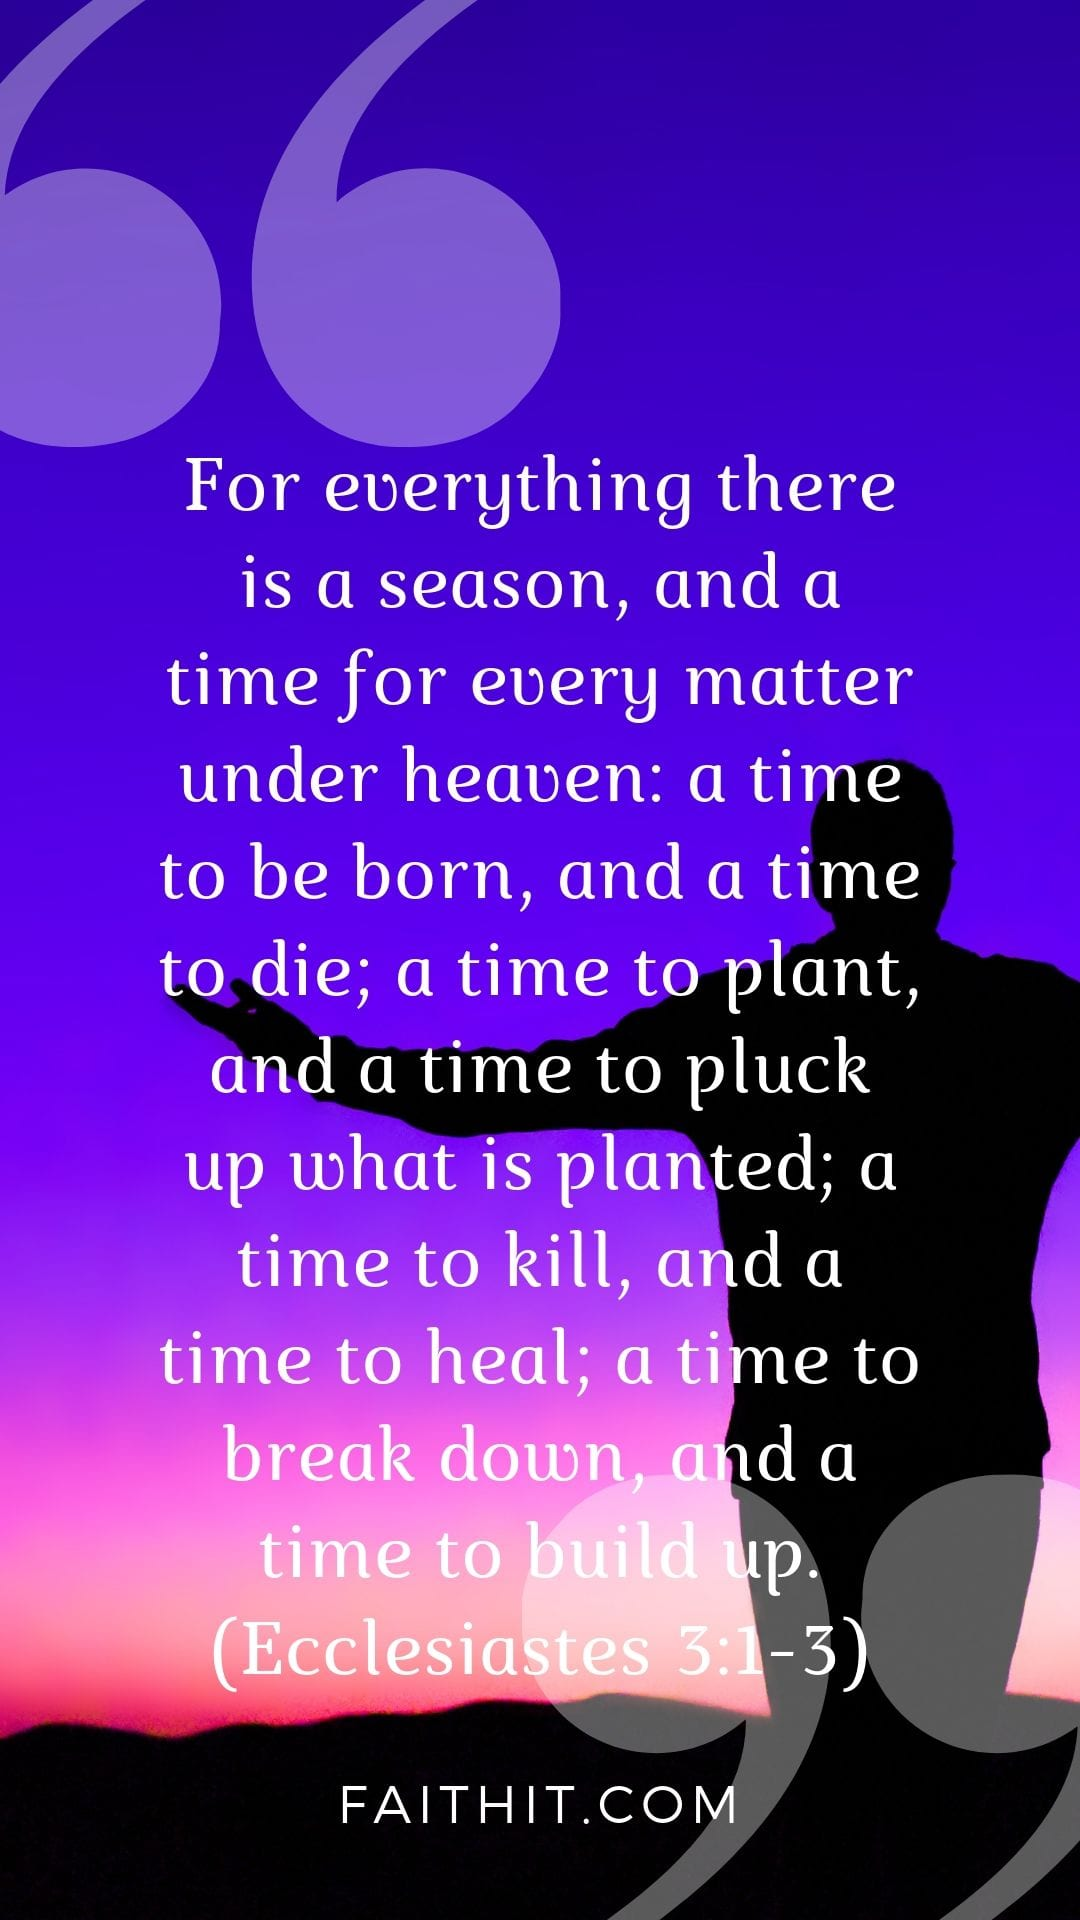 For everything there is a season, and a time for every matter under heaven: a time to be born, and a time to die; a time to plant, and a time to pluck up what is planted; a time to kill, and a time to heal; a time to break down, and a time to build up. (Ecclesiastes 3:1-3)